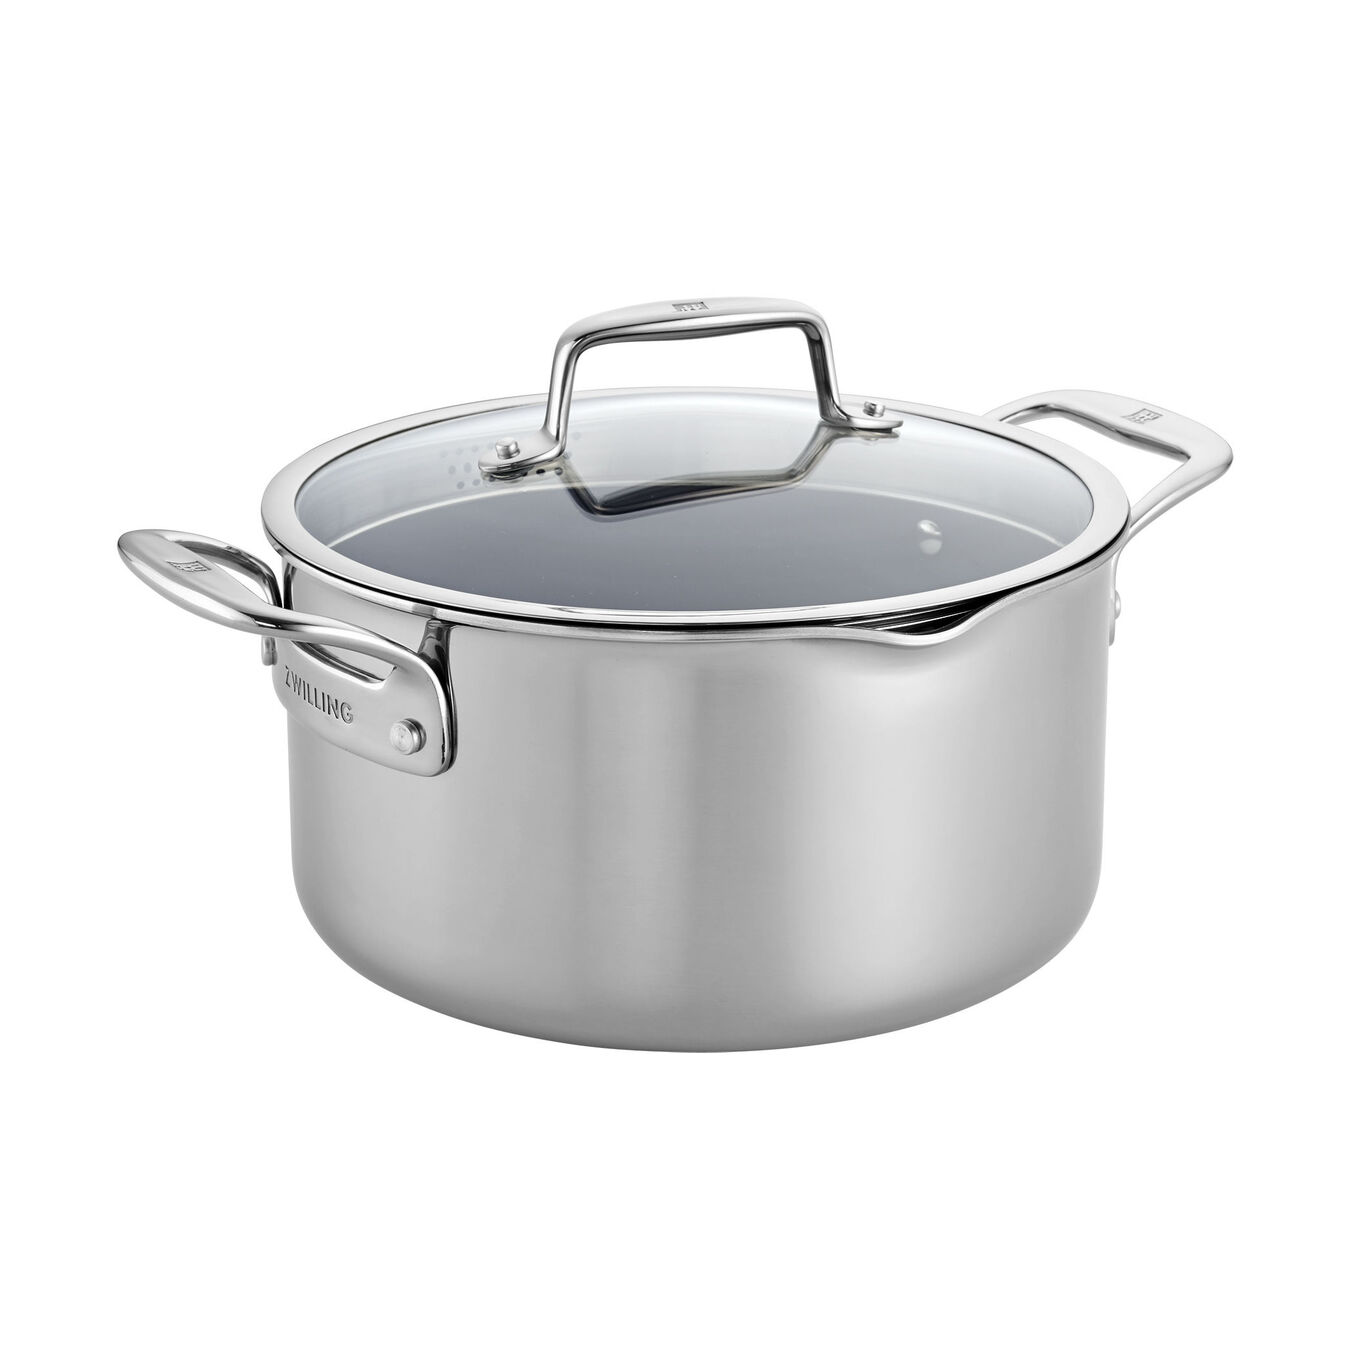 6-qt Stainless Steel Ceramic Nonstick Dutch Oven,,large 1